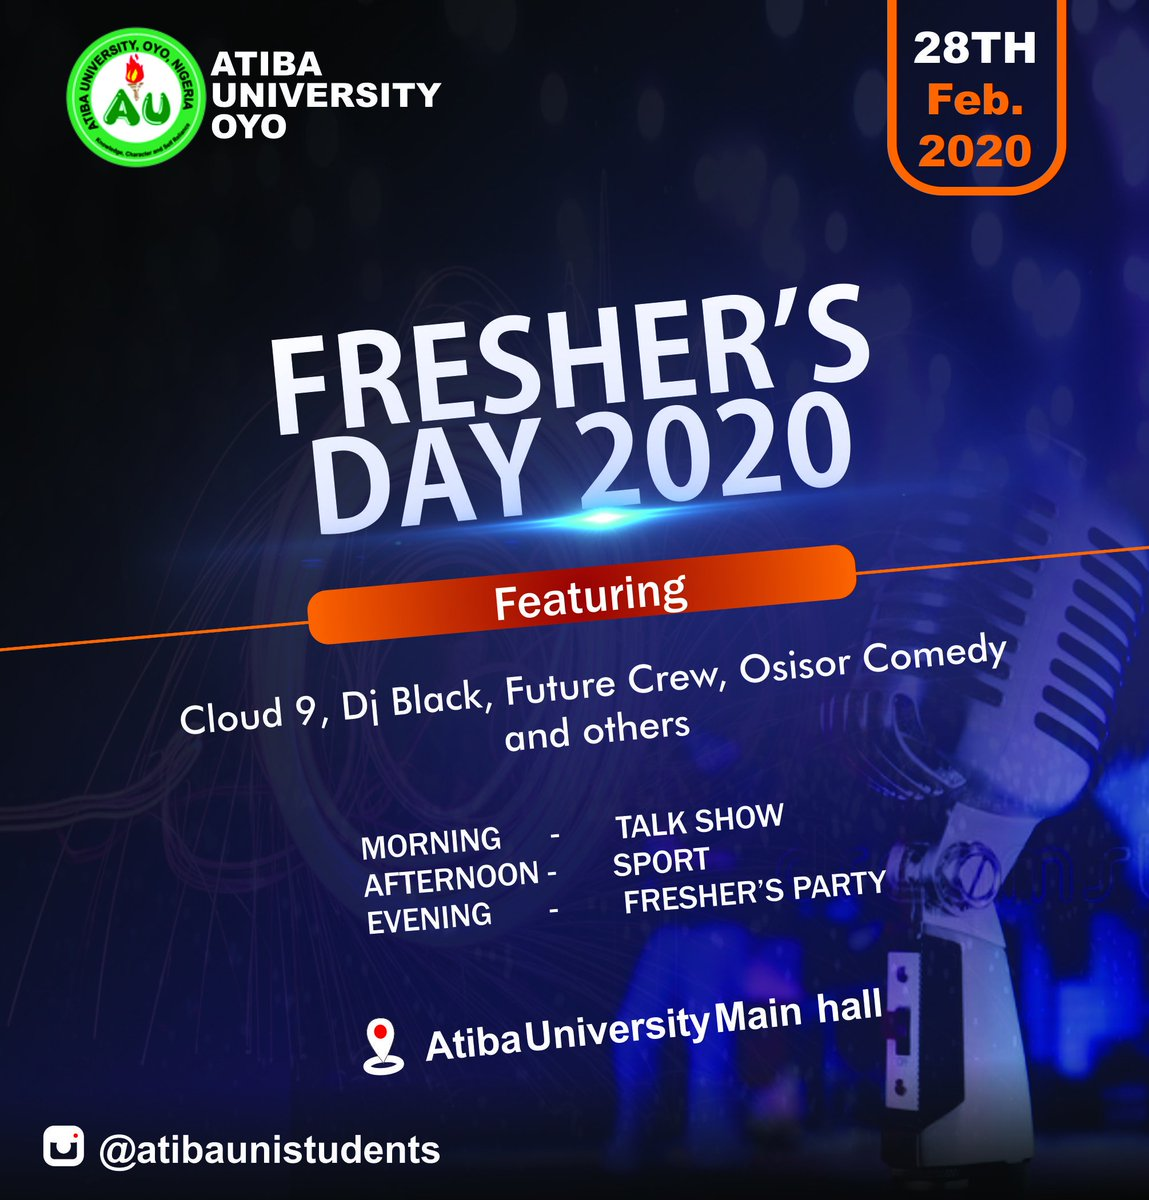 Fresher's day 2020, Atiba University oyo Exceller Media, Graphics department #excellermedia #nigeriaphotographer #graphicsdesigner #logodesigner #Deepthotsfilms #auichapel #atibaunistudents #atibauniversity @excellermedia_ceo @atibaunistudents @atibauniversity @adenijidelightpic.twitter.com/QGVaByxJv2